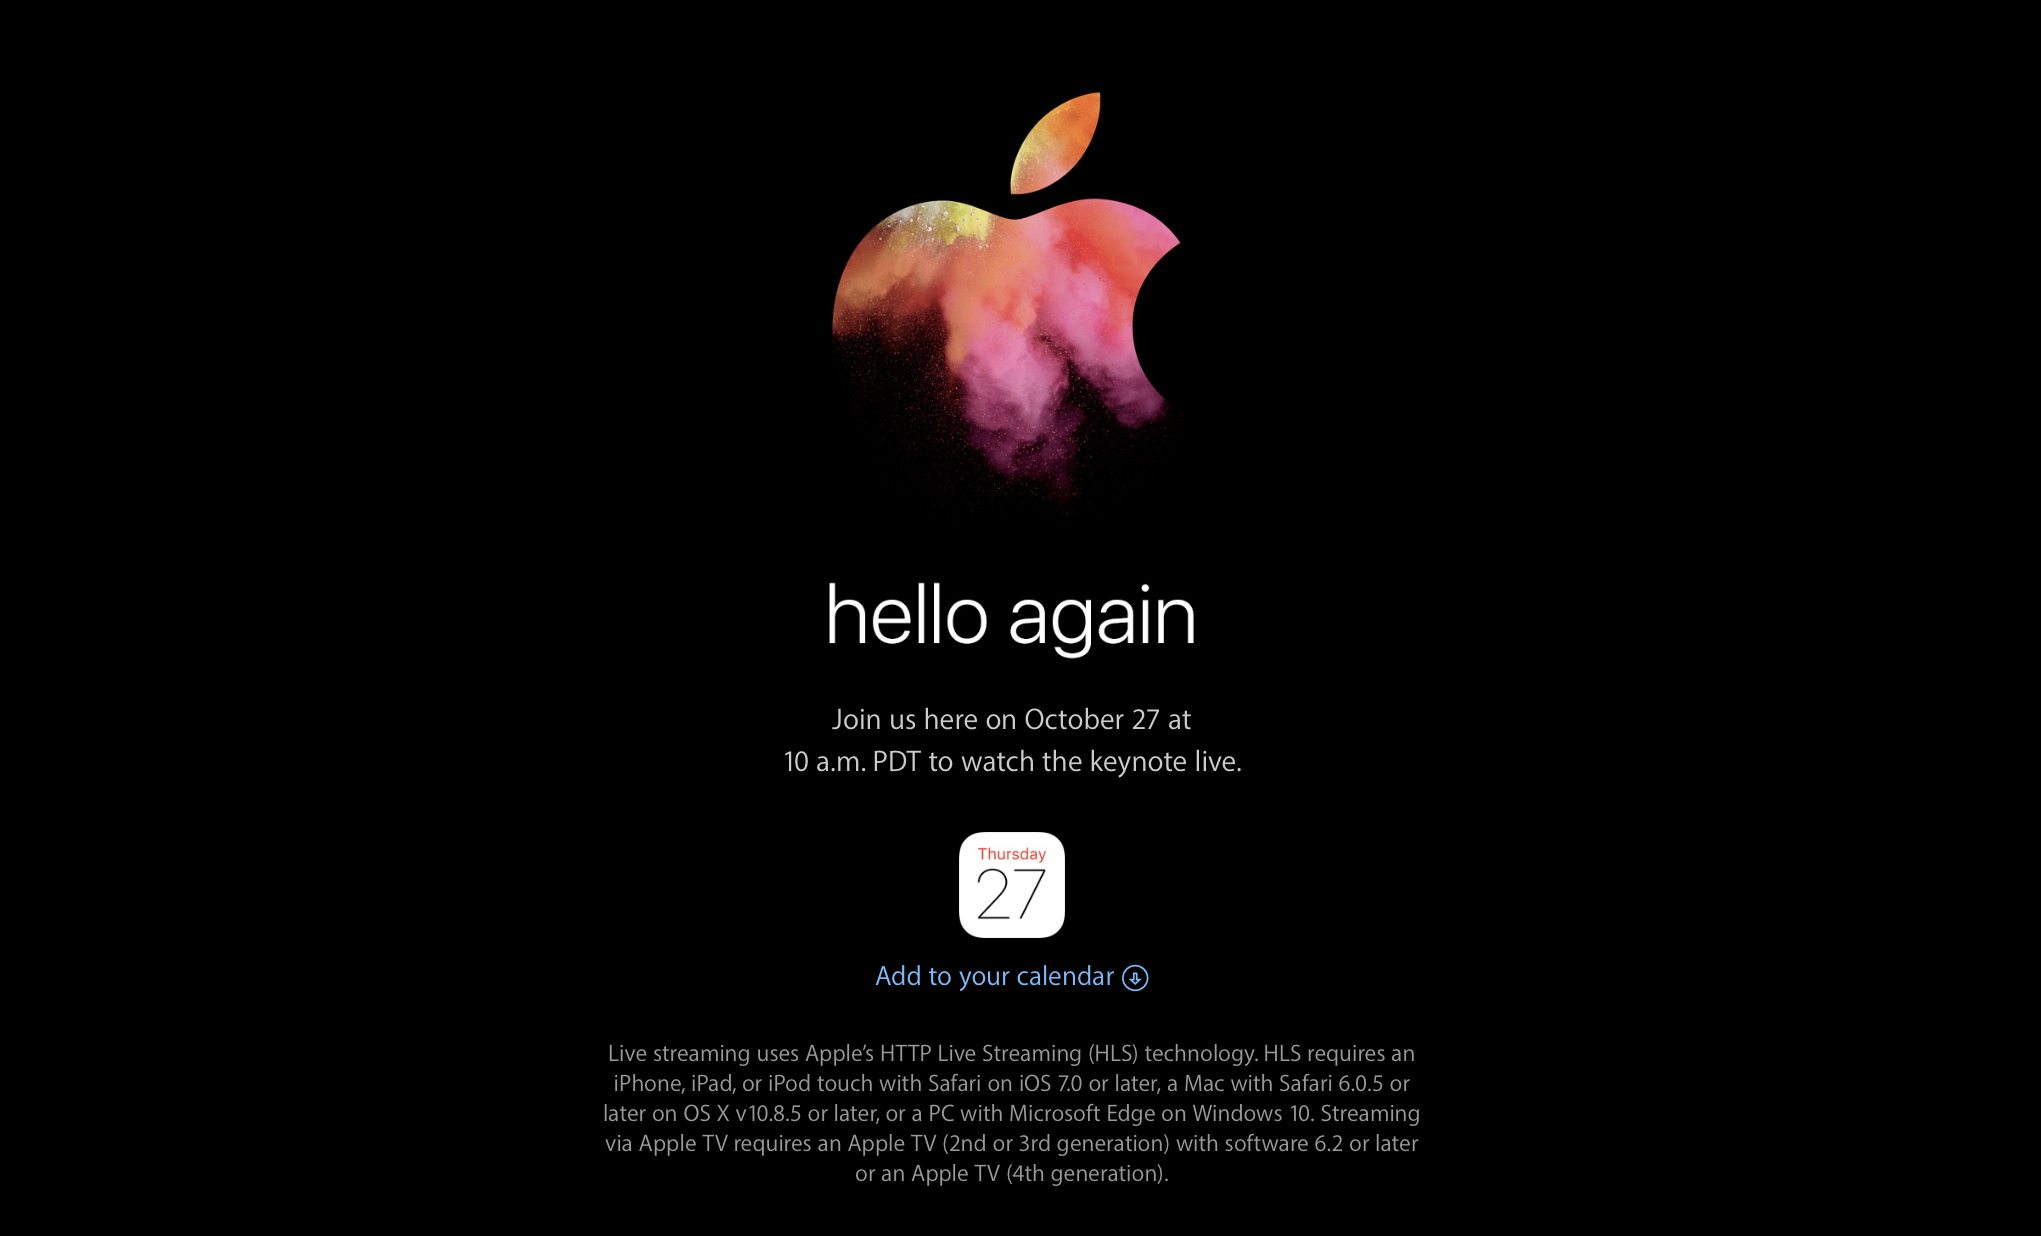 apple-event-hello-again